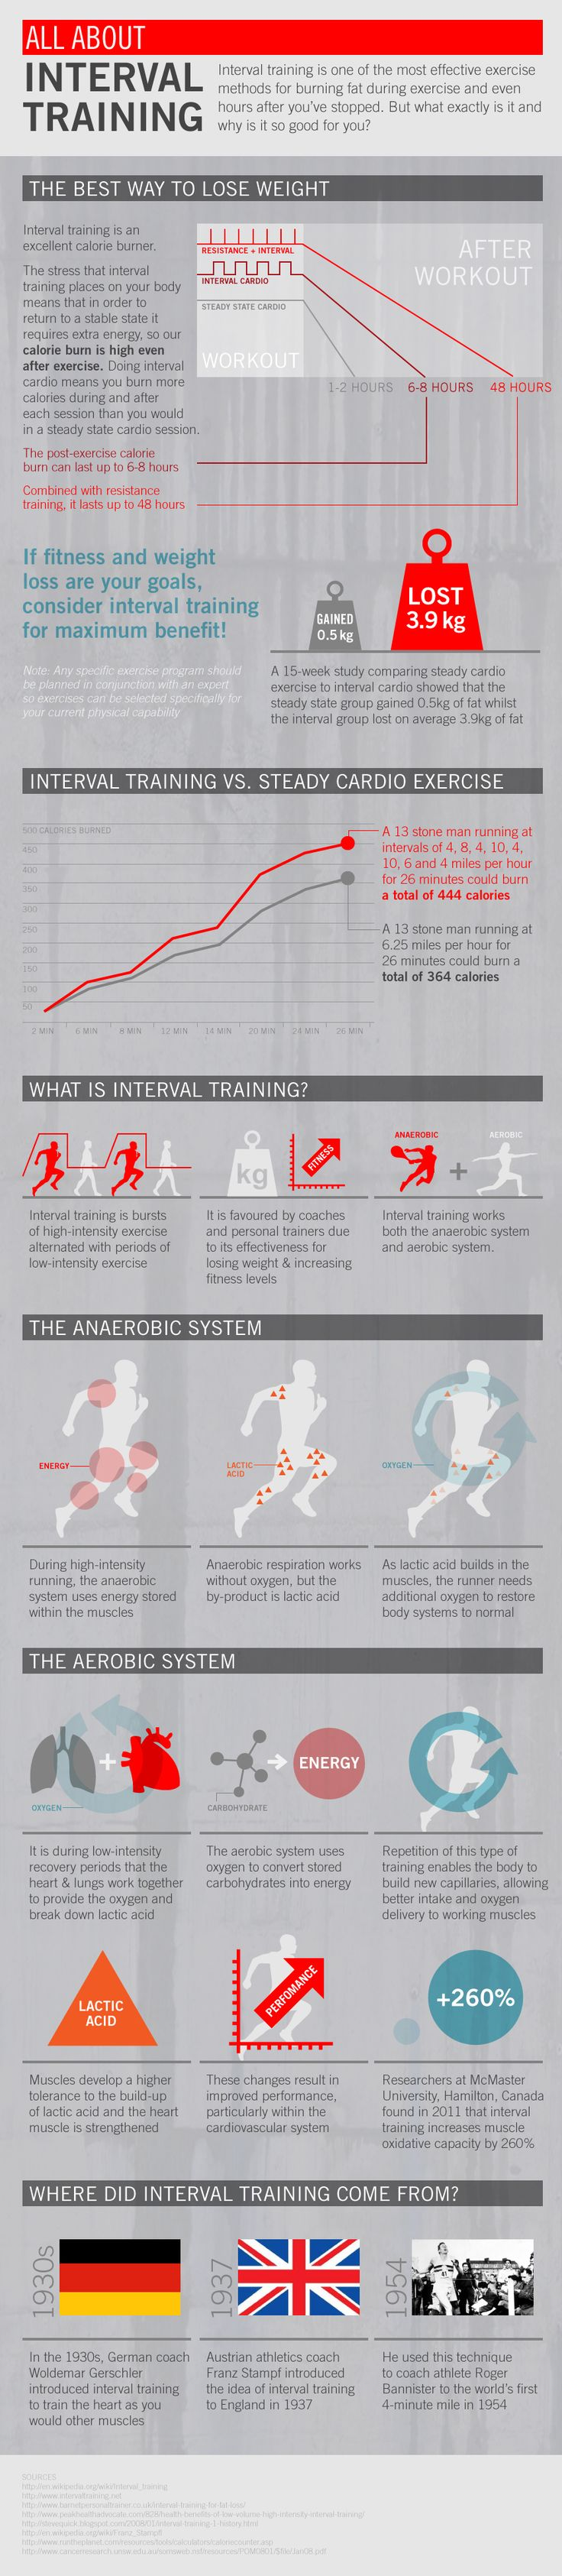 All about interval training! An efficient way to burn calories and lose weight. #Cardio #HIIT #FItFluential